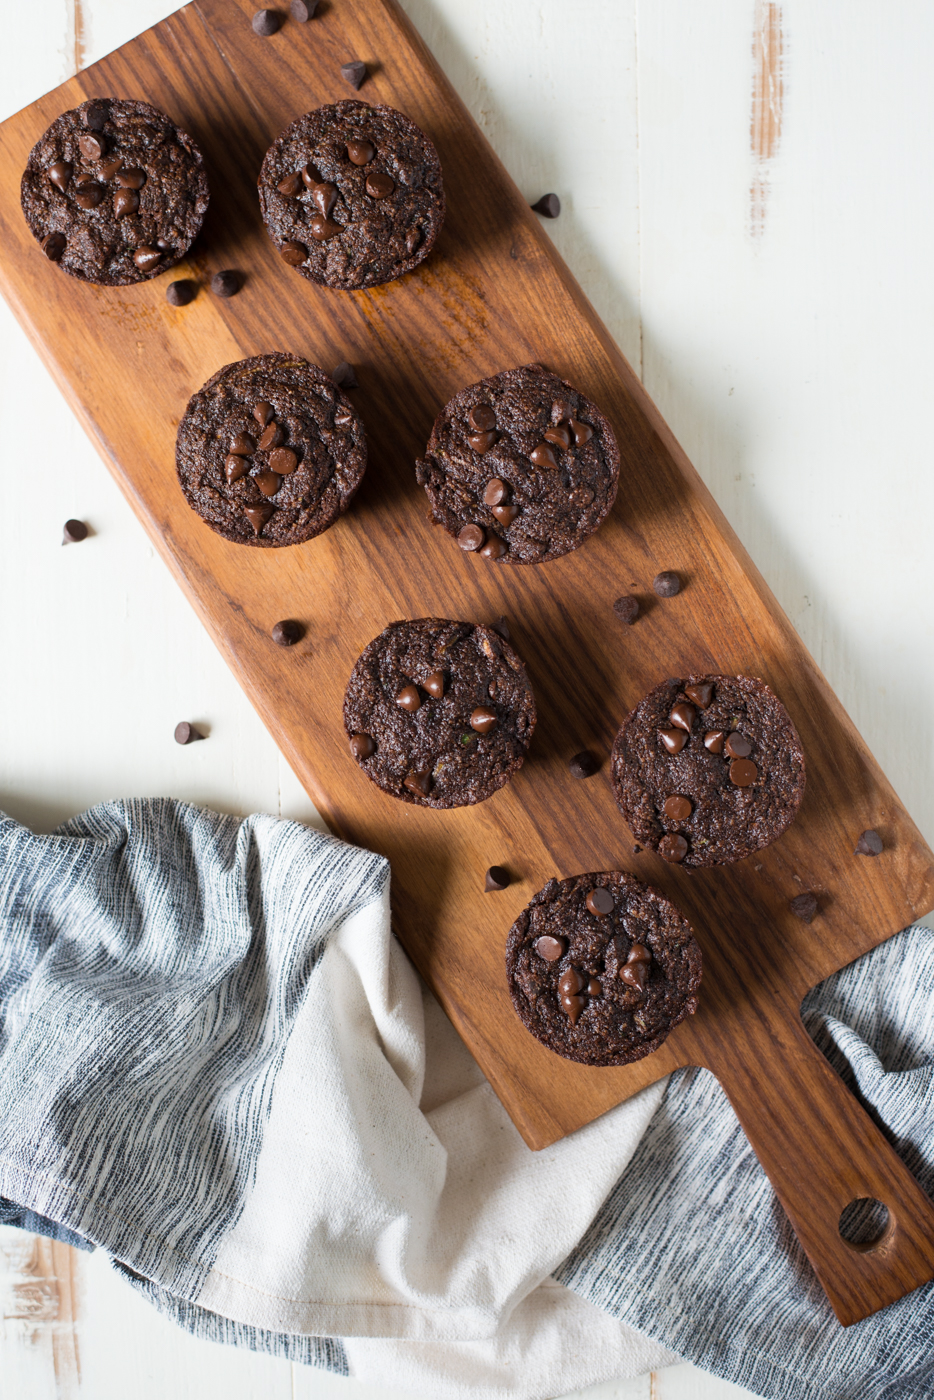 Decadent, rich, and made without a hint of flour or refined sugar, One-Bowl Flourless Double Chocolate Zucchini Muffins are easy to make and the perfect everyday treat!